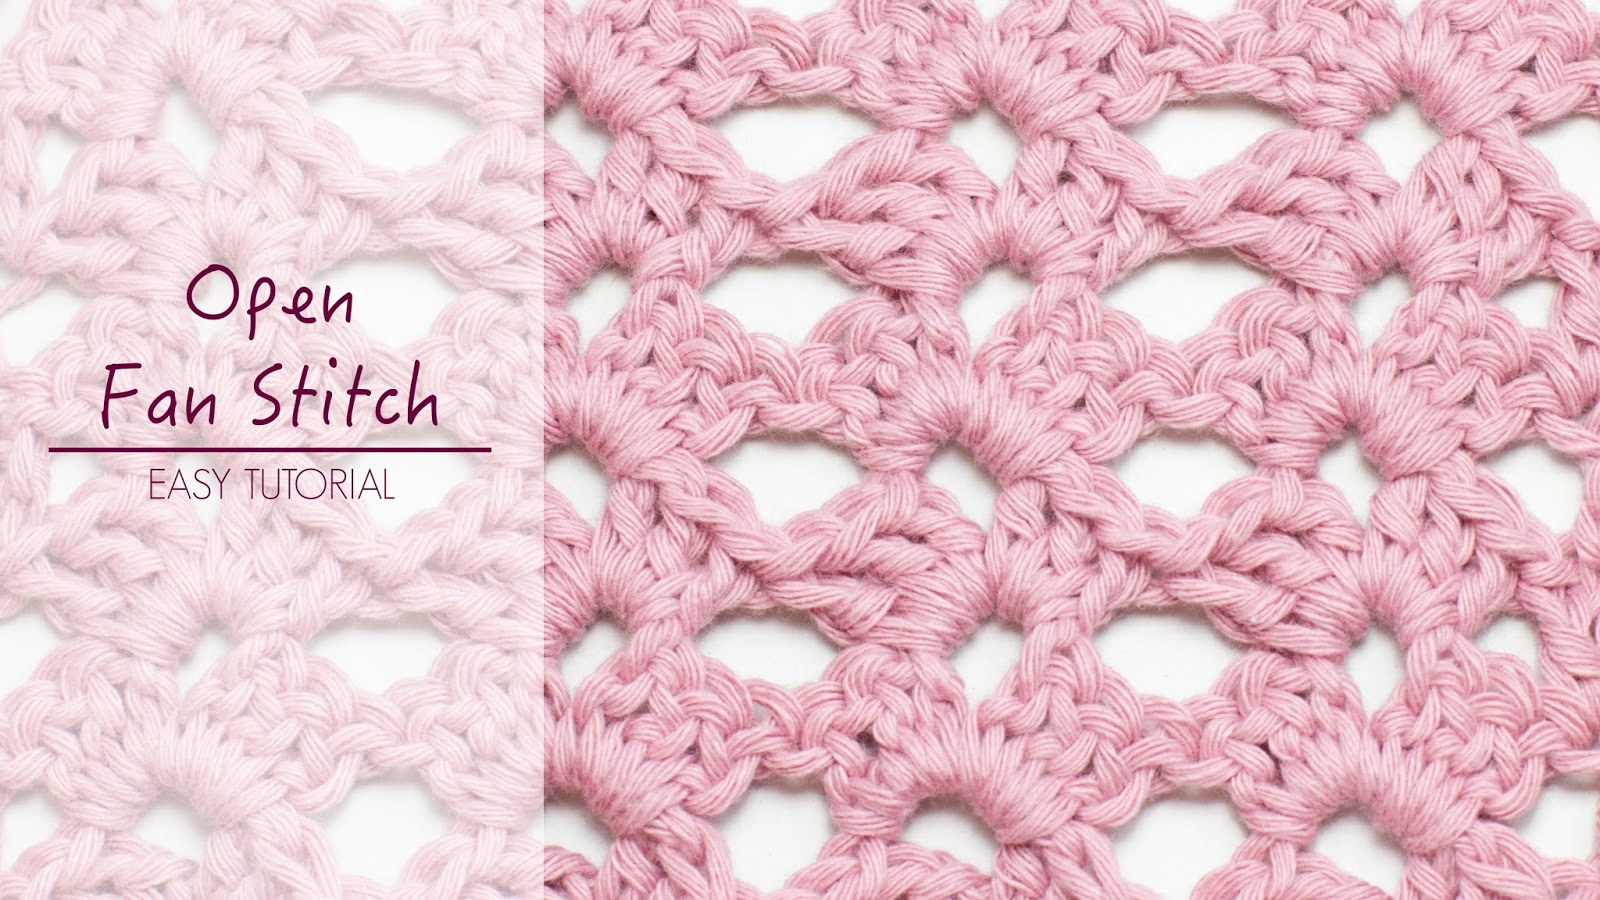 Crochet Stitch Open : ... Honey Craft, Crochet, Create: How To: Crochet The Open Fan Stitch